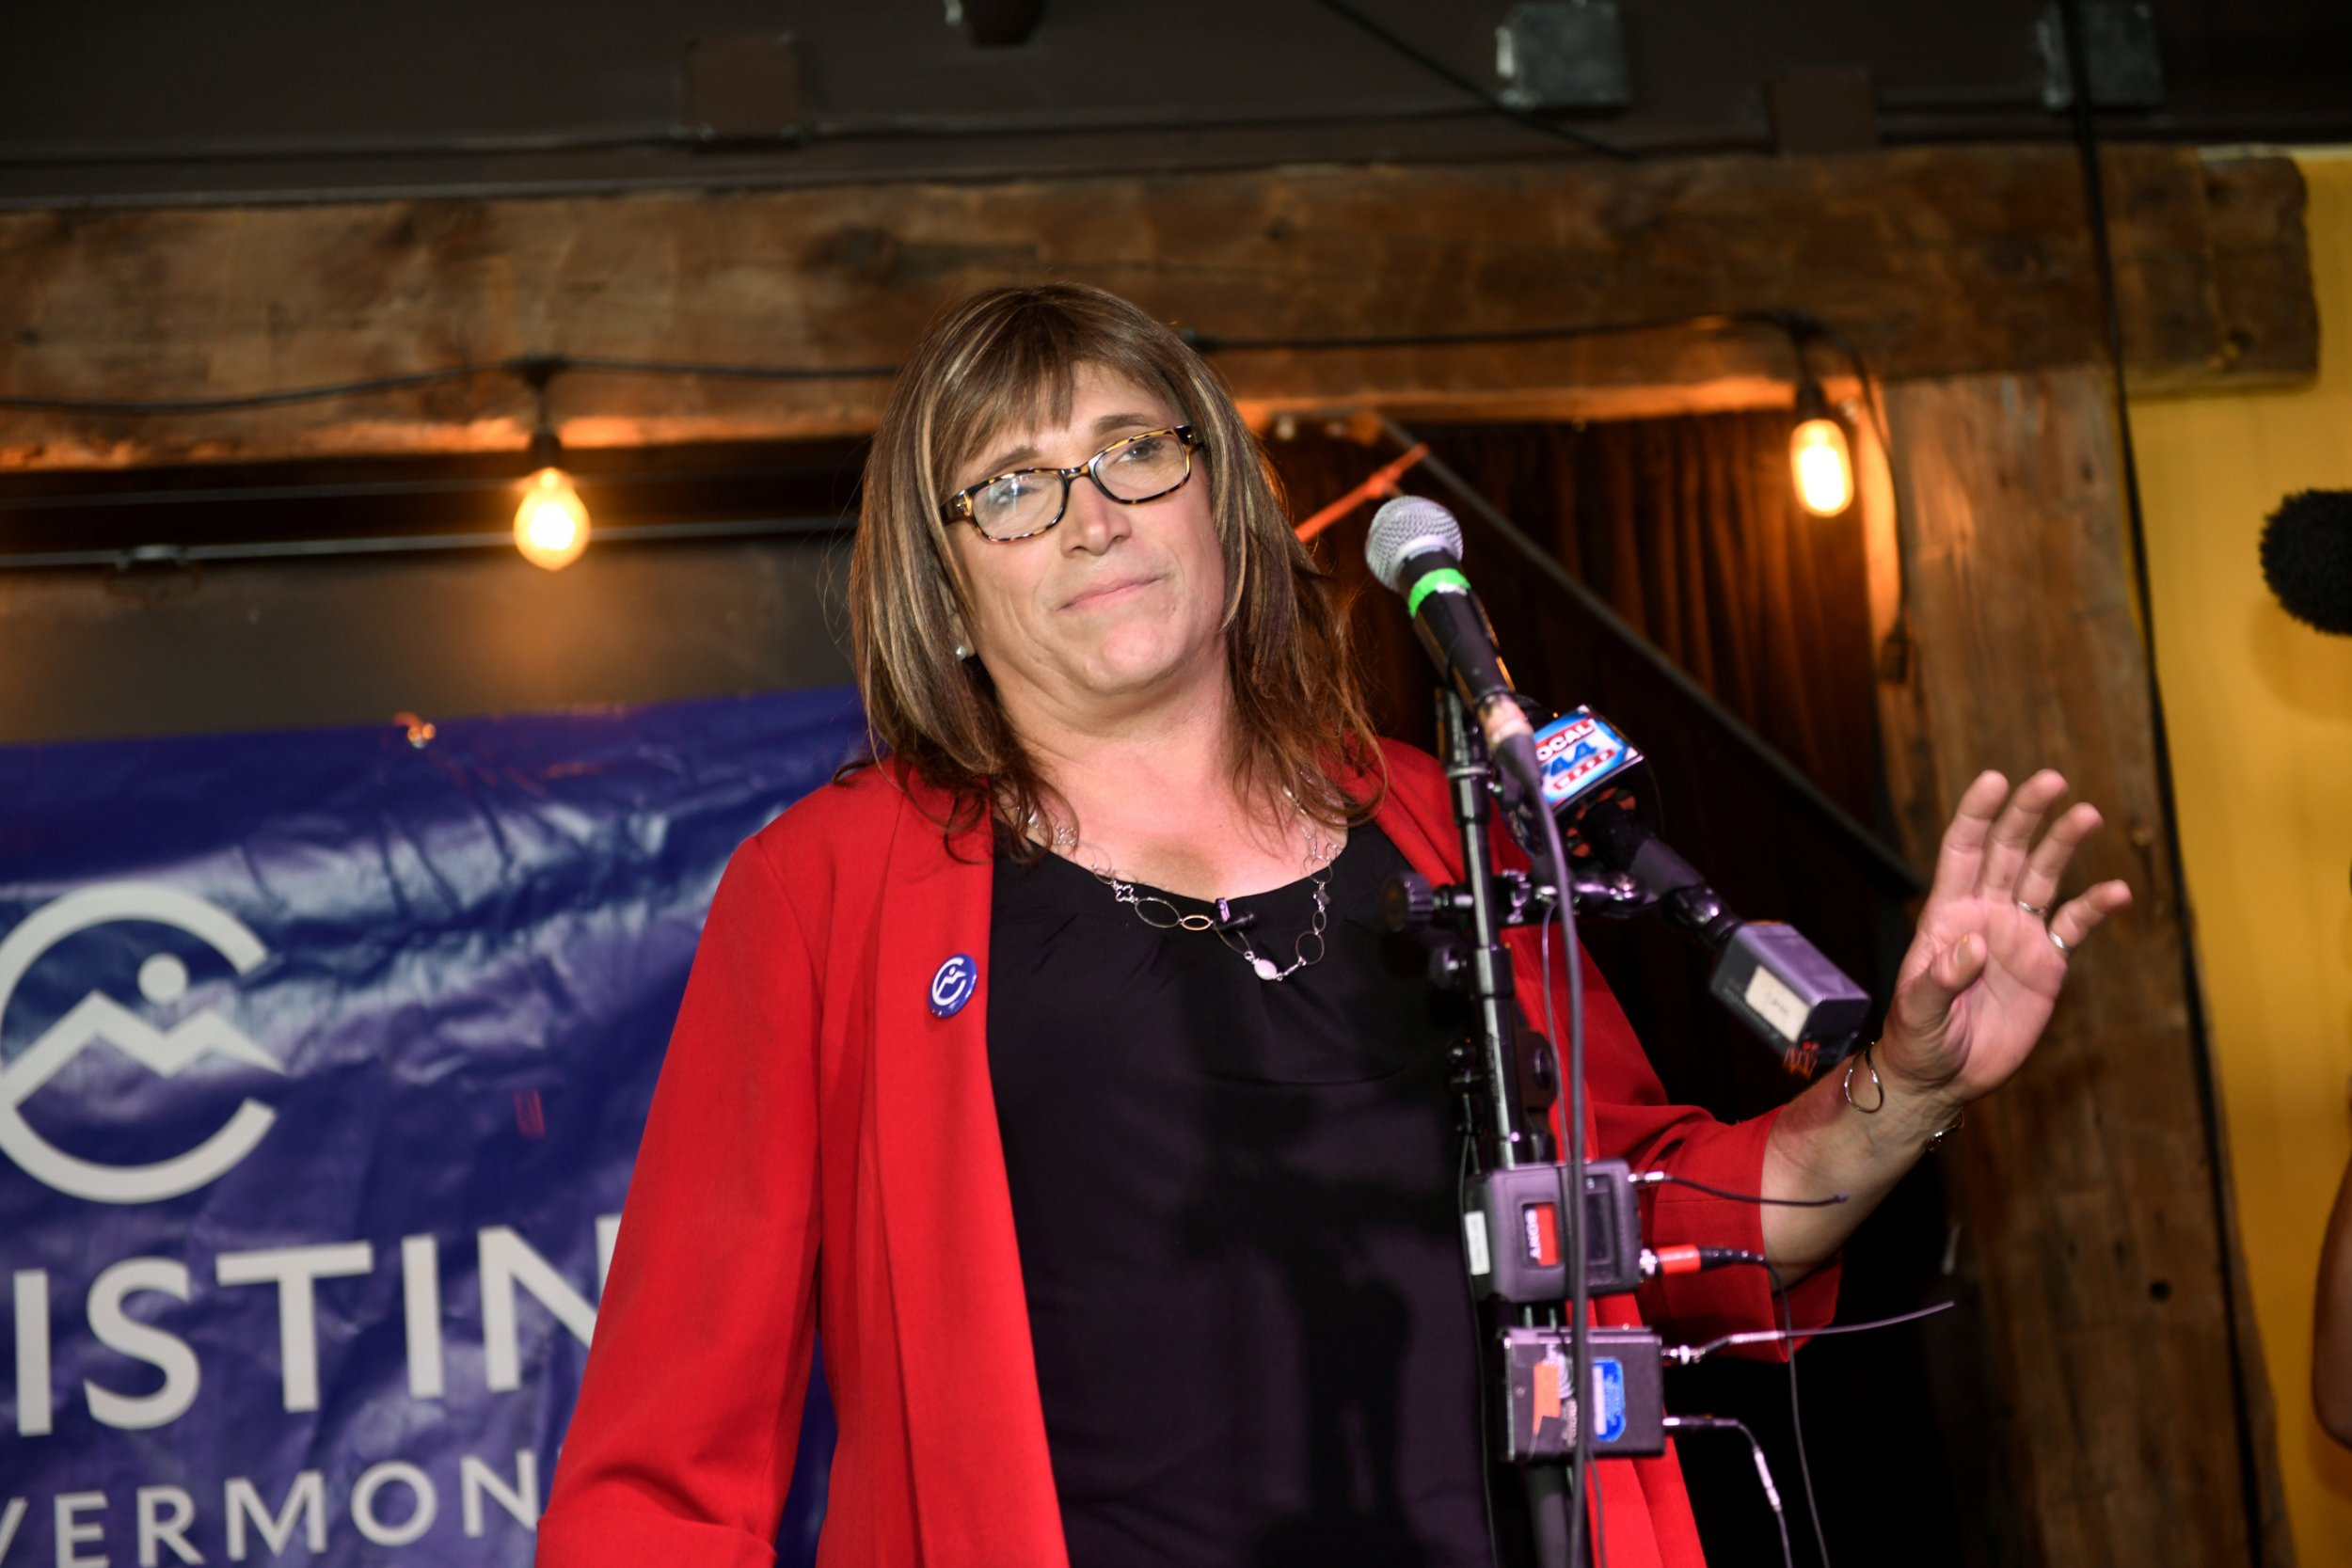 Christine Hallquist on CNN I don't even know what socialism is